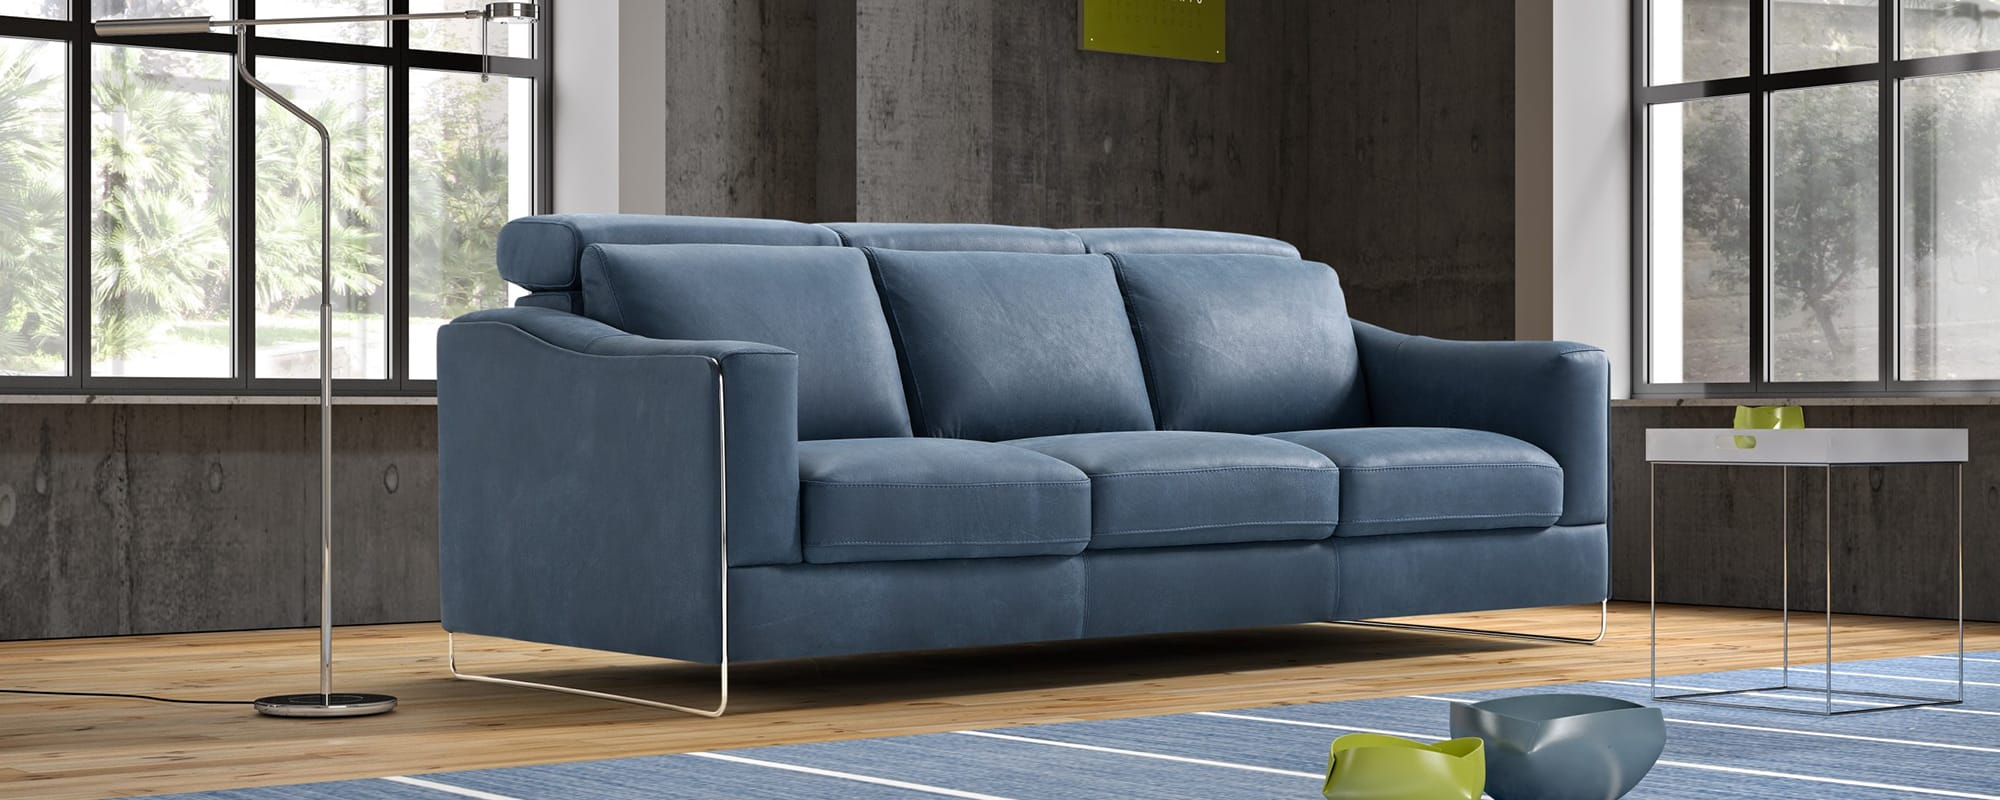 ECHO 3 Seat (3 Cushion) Sofa.